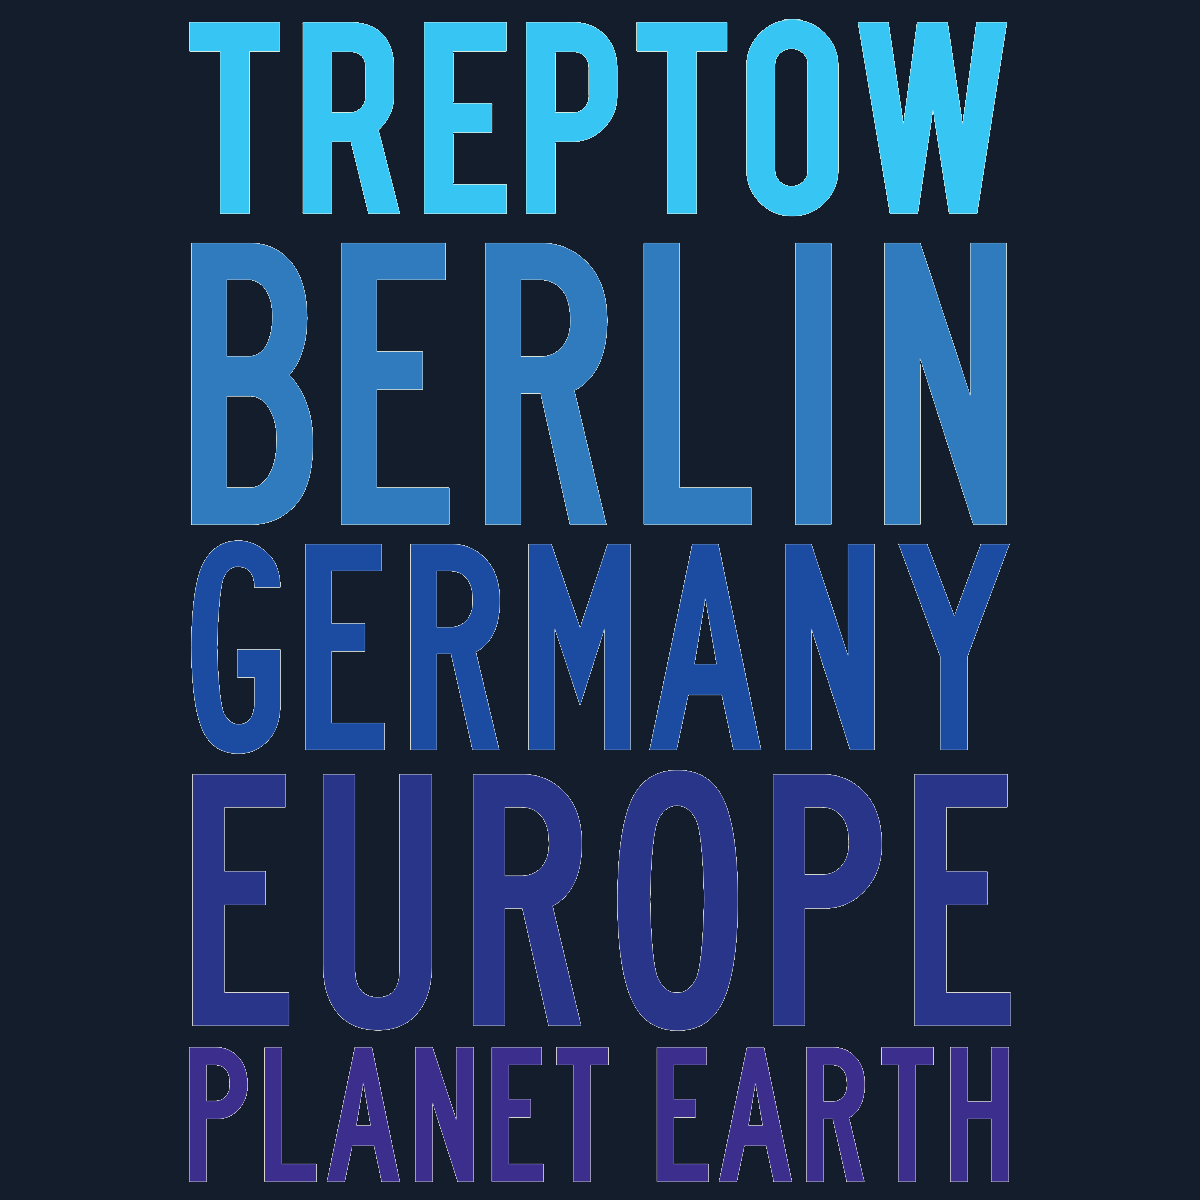 Treptow Planet Earth